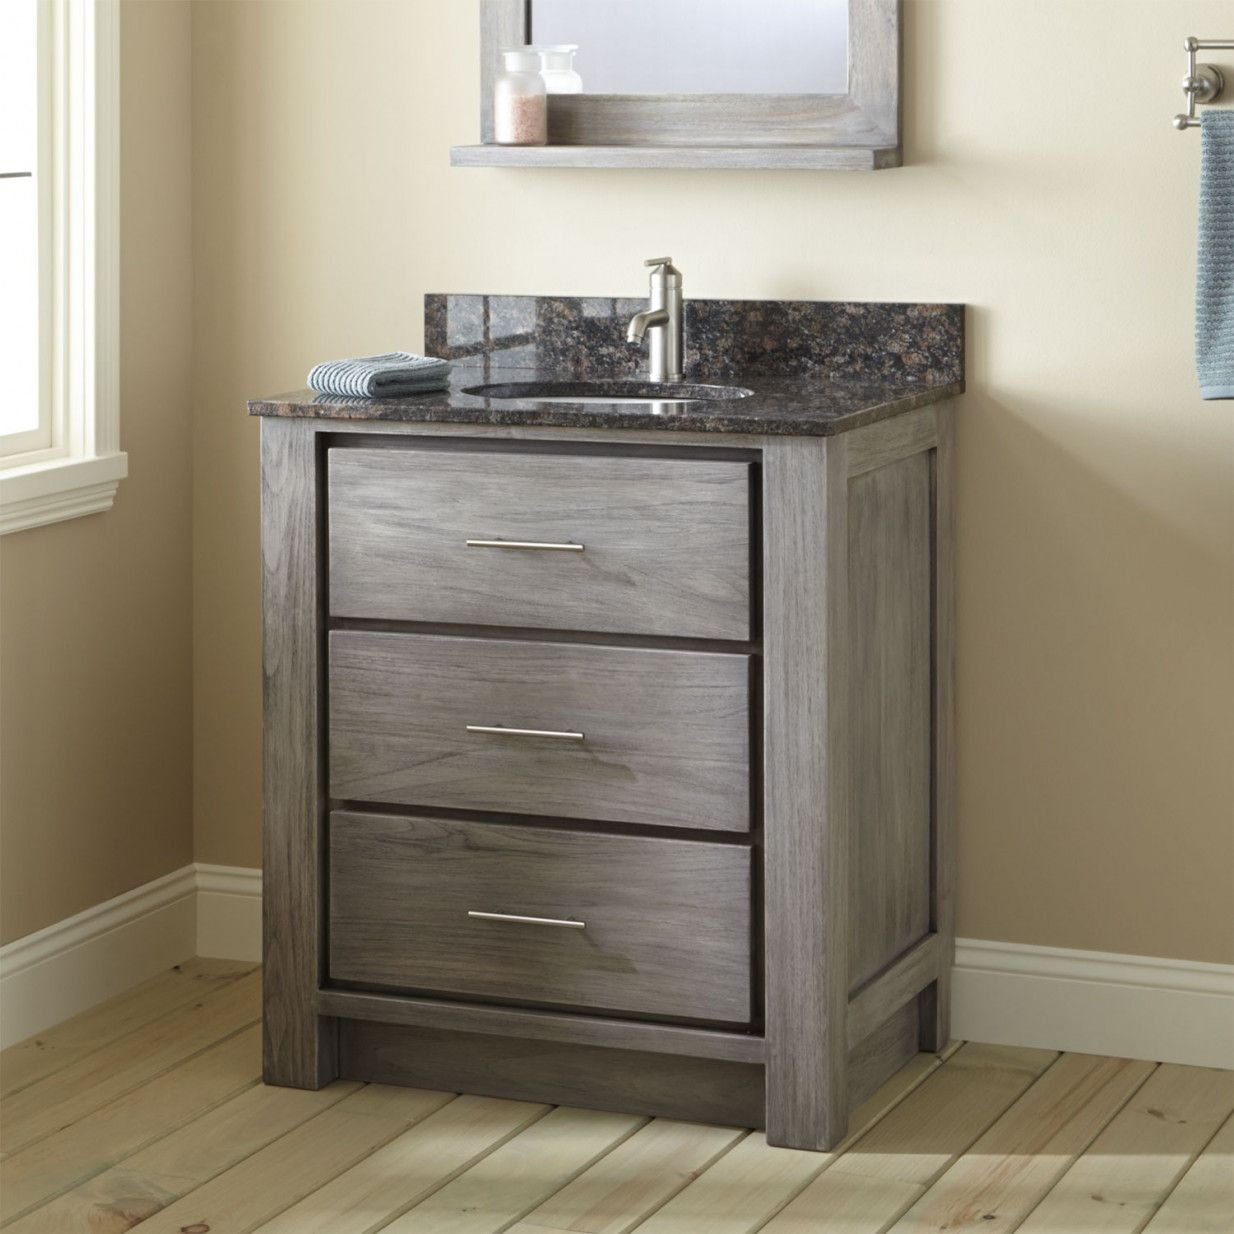 Small Bathroom Vanity Cabinets Best Interior Paint Brands Che - Best bathroom paint brand